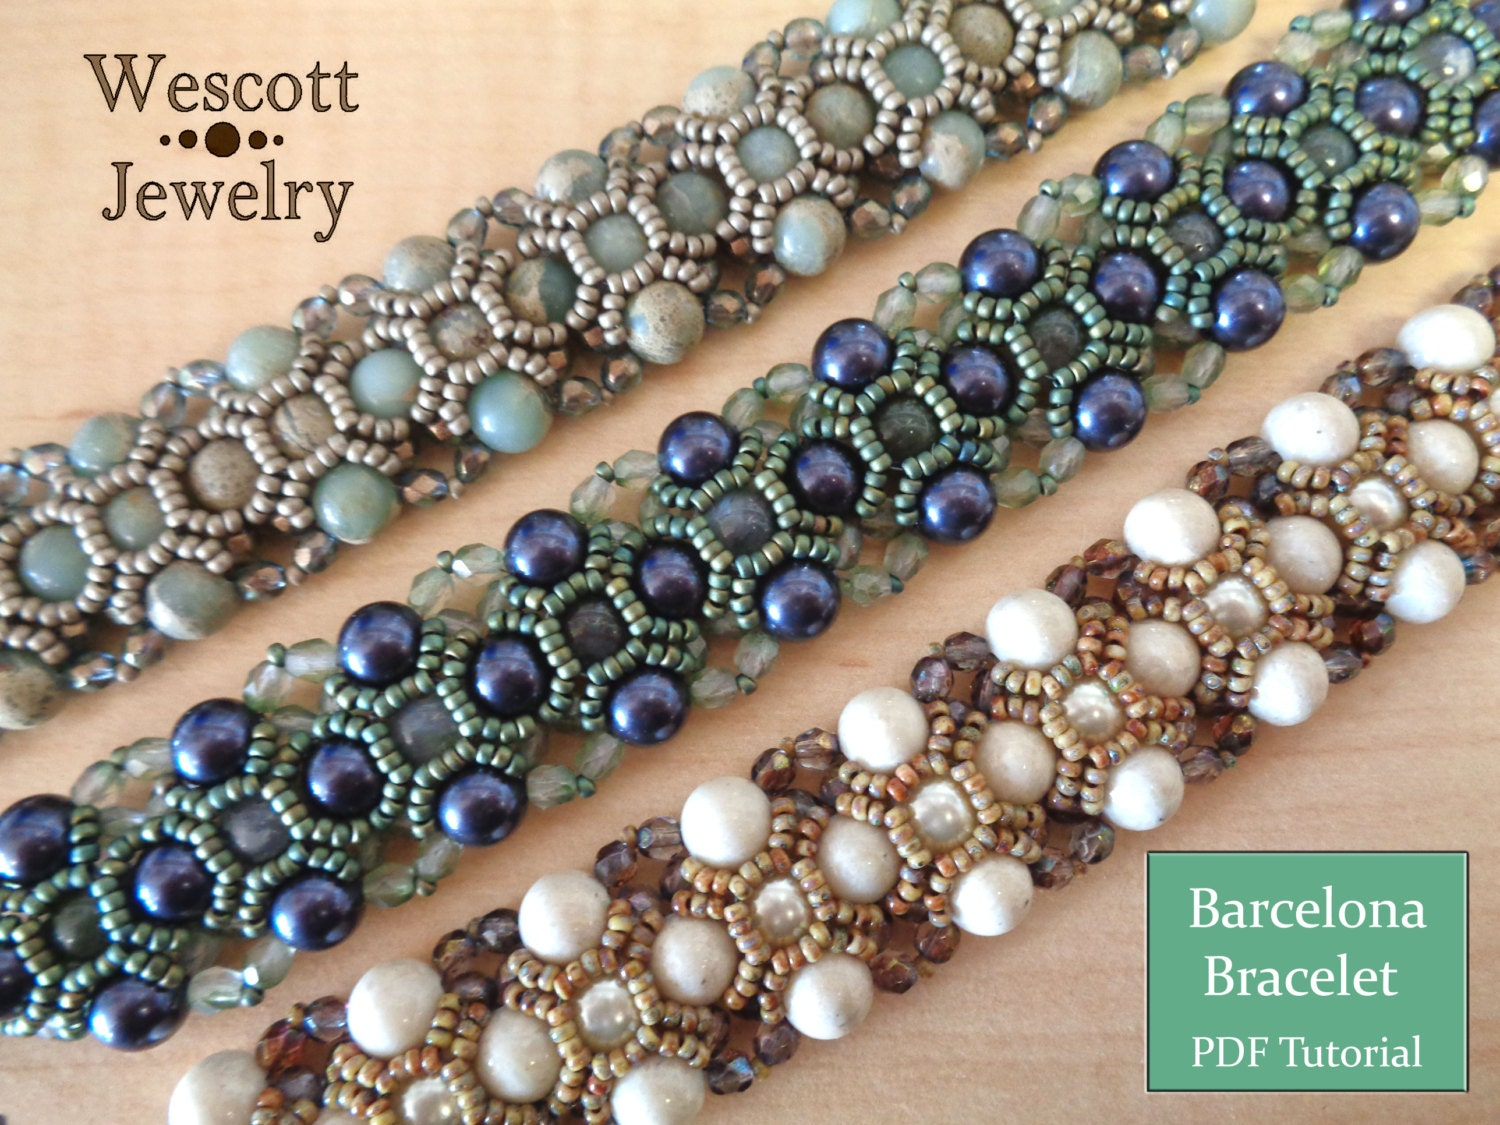 Pattern For Barcelona Bracelet With Pearls Seed Beads And